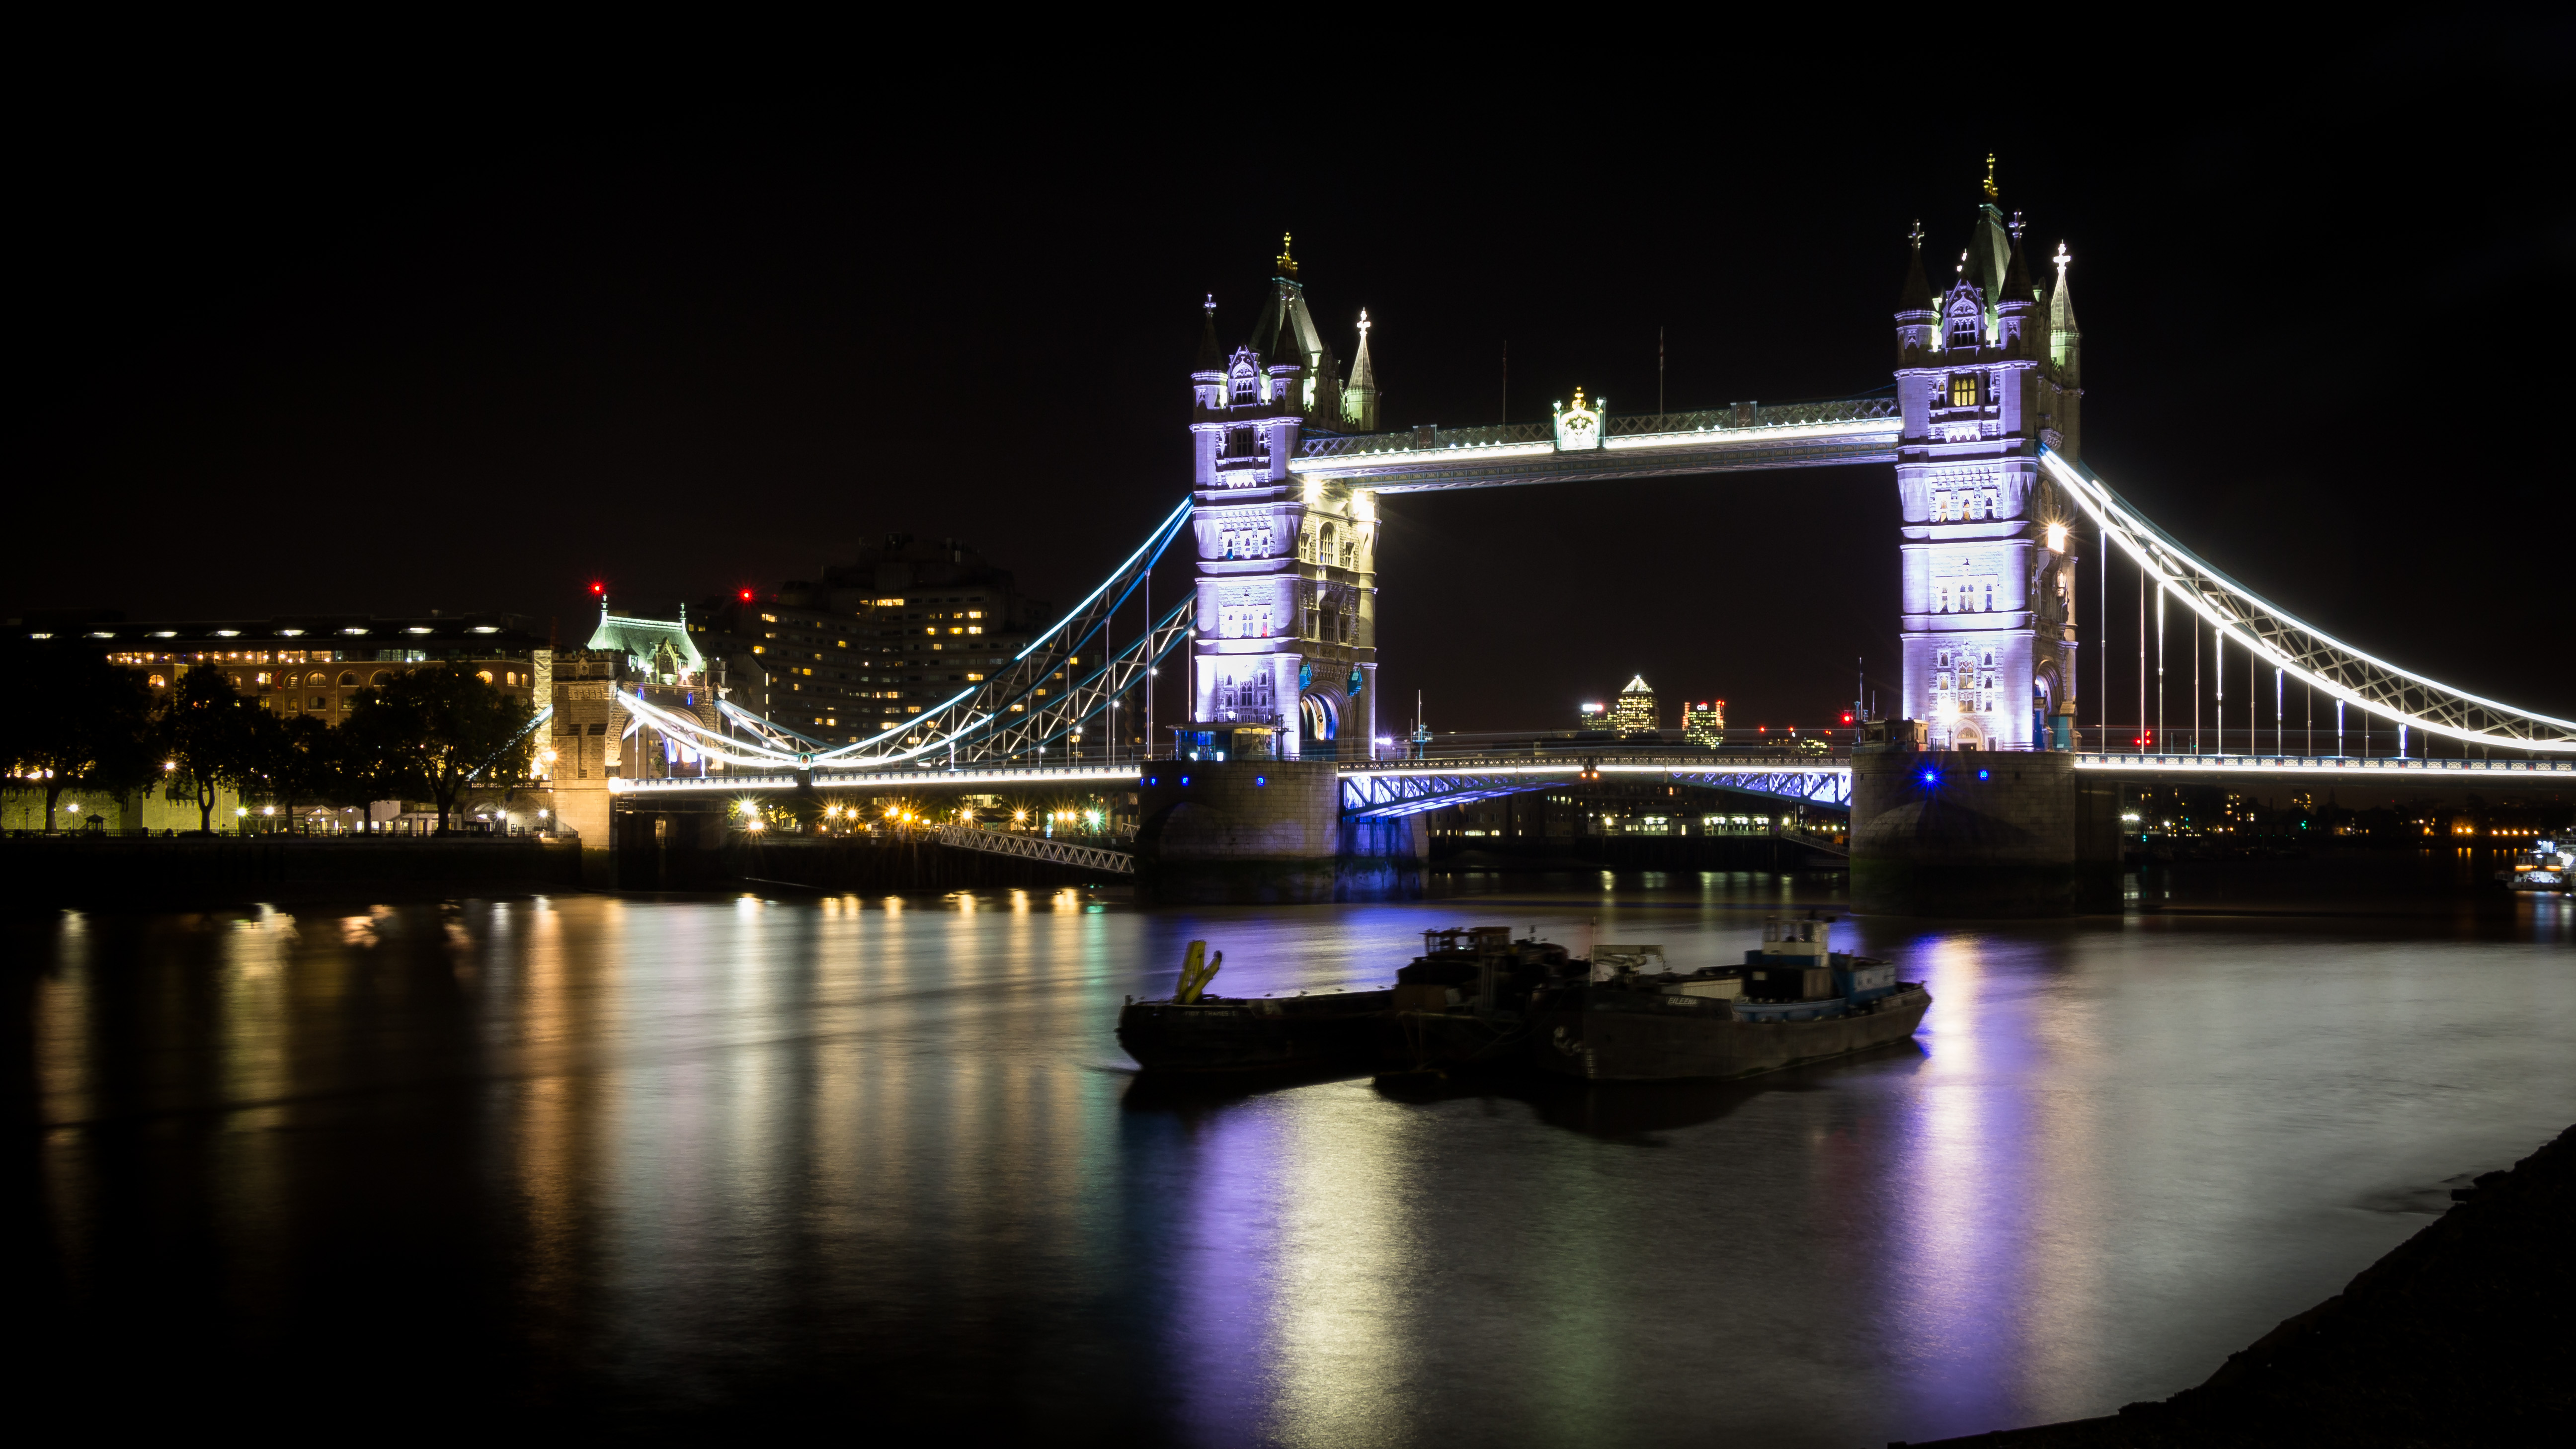 Tower Bridge - Wikipedia